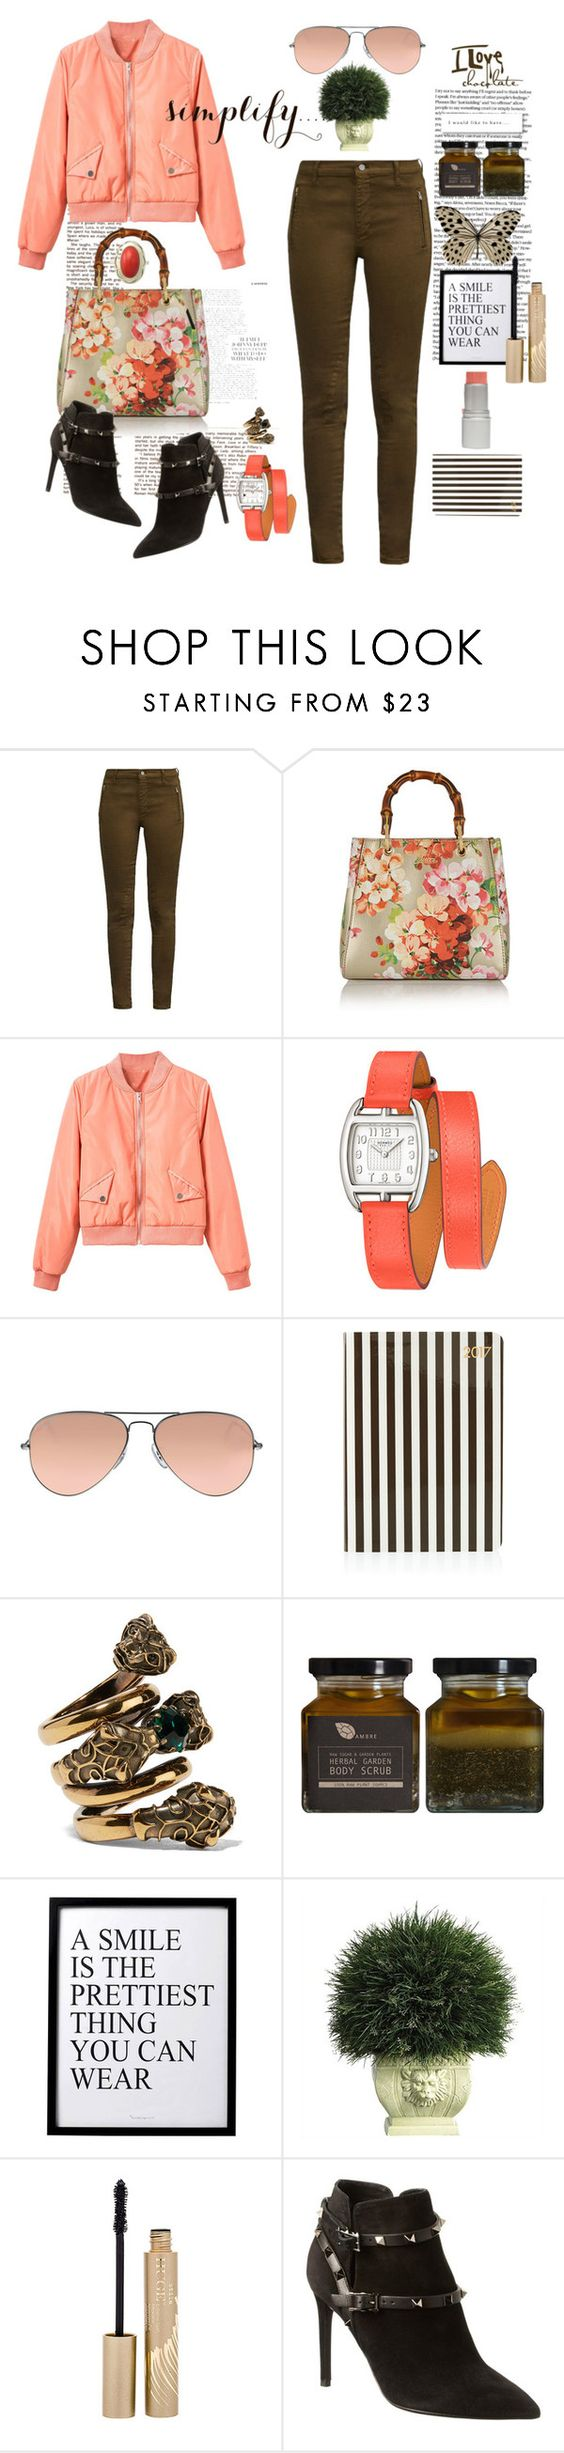 """A SMILE IS THE PRETTIEST THING YOU CAN WEAR!"" by k-hearts-a ❤ liked on Polyvore featuring French Connection, Gucci, WithChic, Hermès, Ray-Ban, Henri Bendel, AMBRE, 3R Studios, Nearly Natural and Stila"